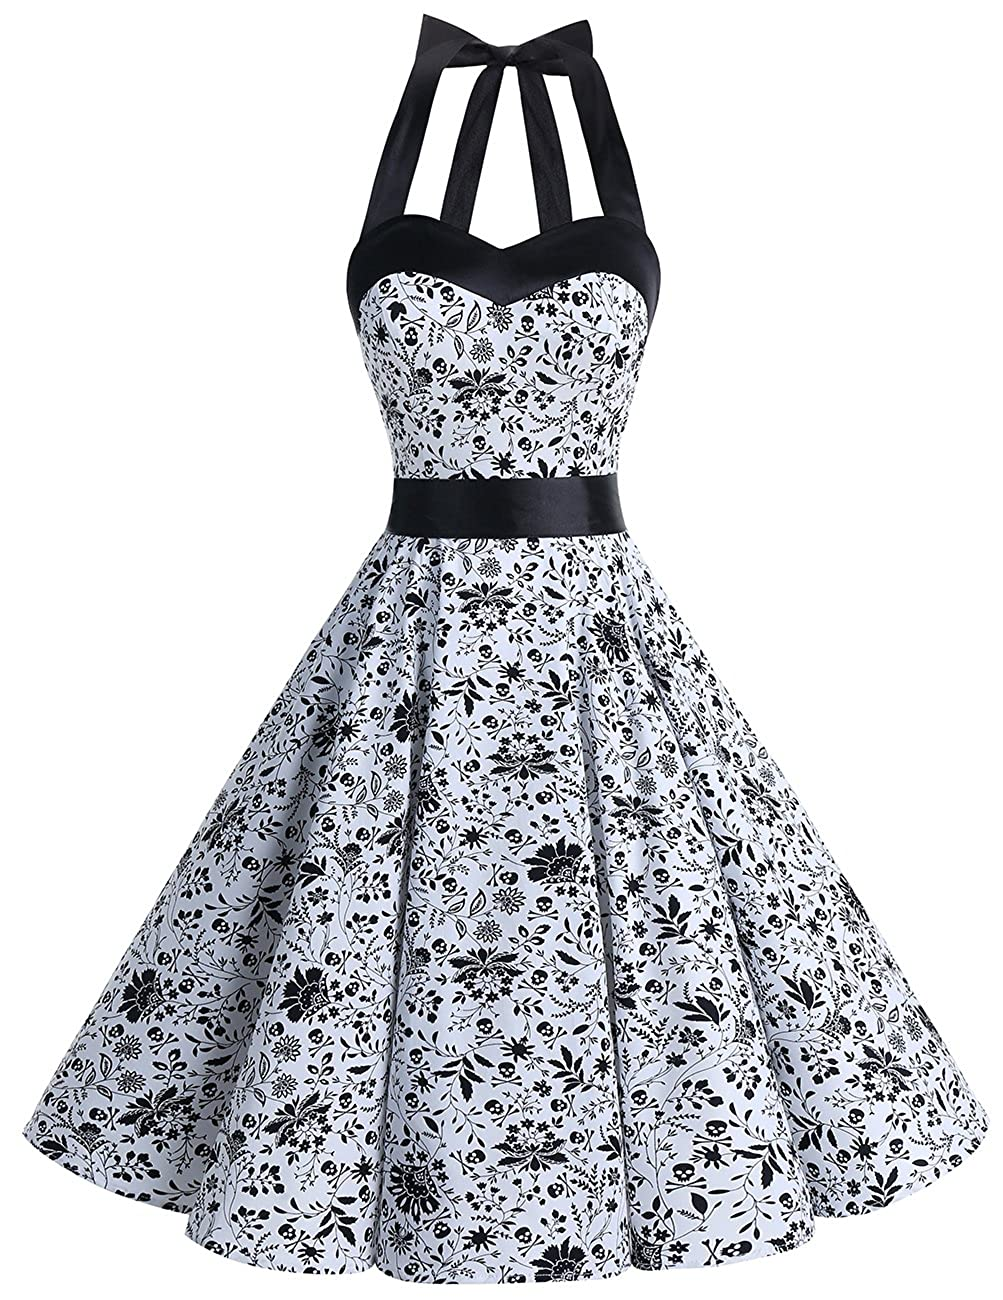 TALLA 3XL. Dresstells® Halter 50s Rockabilly Polka Dots Audrey Dress Retro Cocktail Dress White Skull 3XL